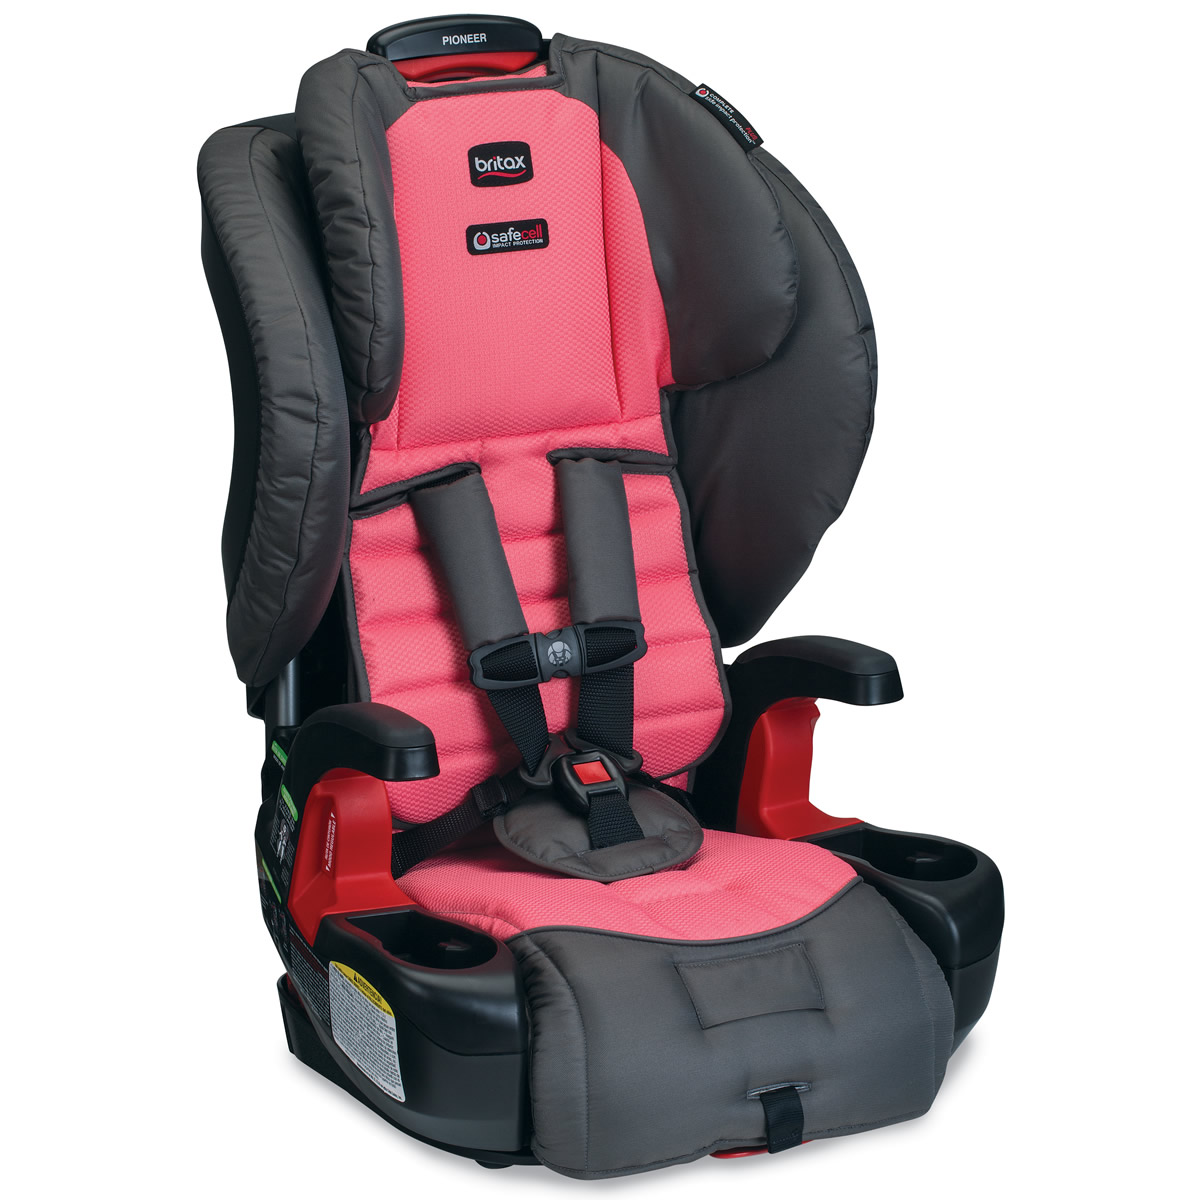 Booster Car Seats ITEM E9LZ66U